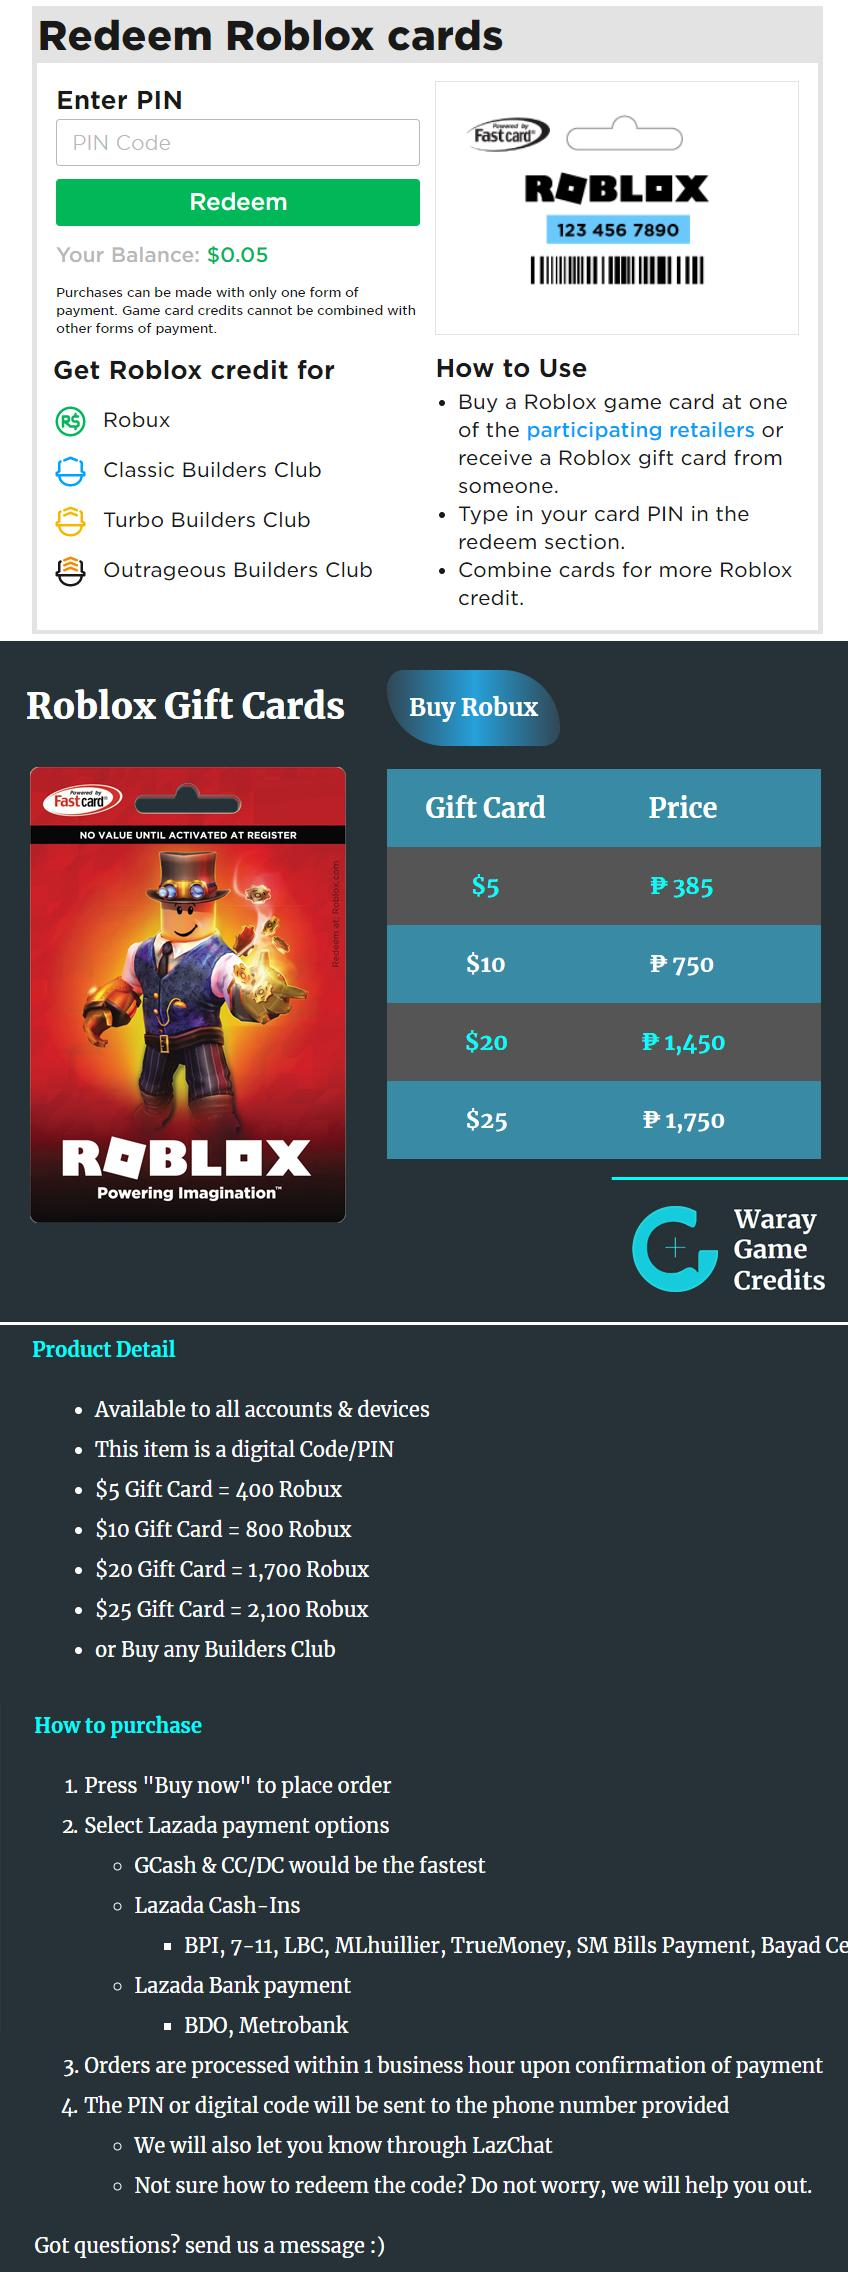 Real Pin Roblox Gift Card Codes How To Find Your Roblox Pin Code لم يسبق له مثيل الصور Tier3 Xyz